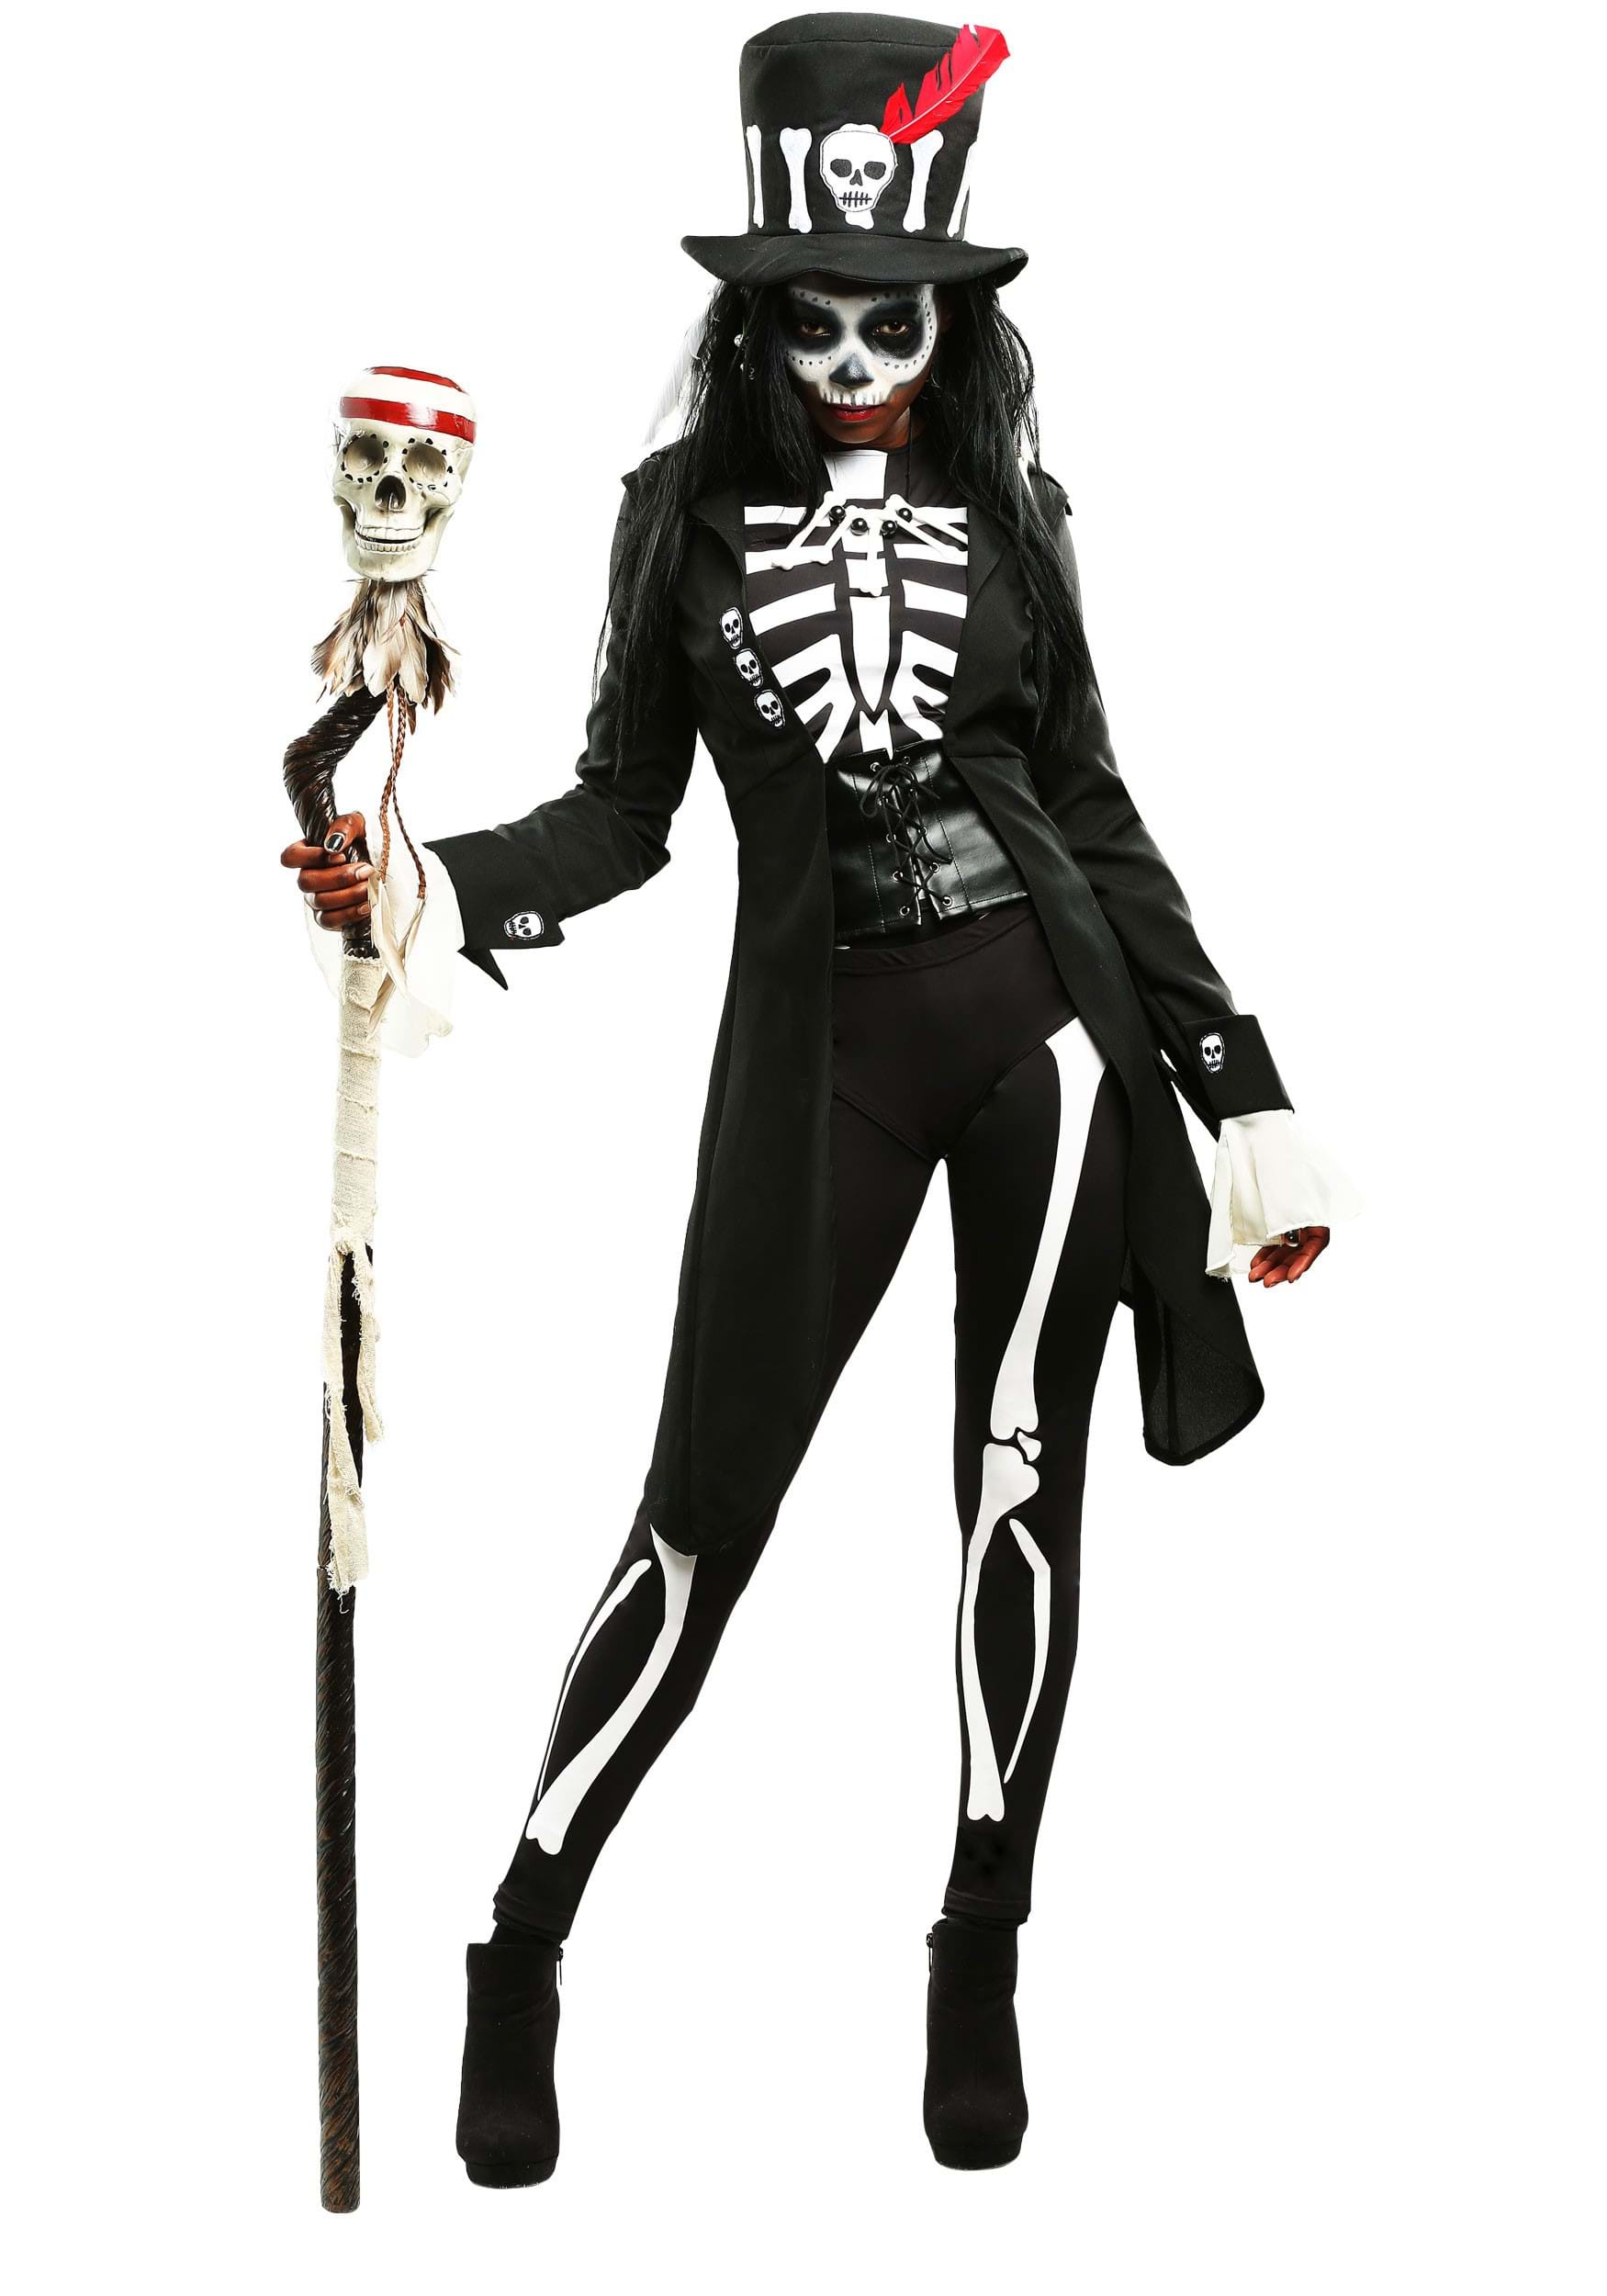 Scary Adult Costumes - Adult Scary Halloween Costume Ideas